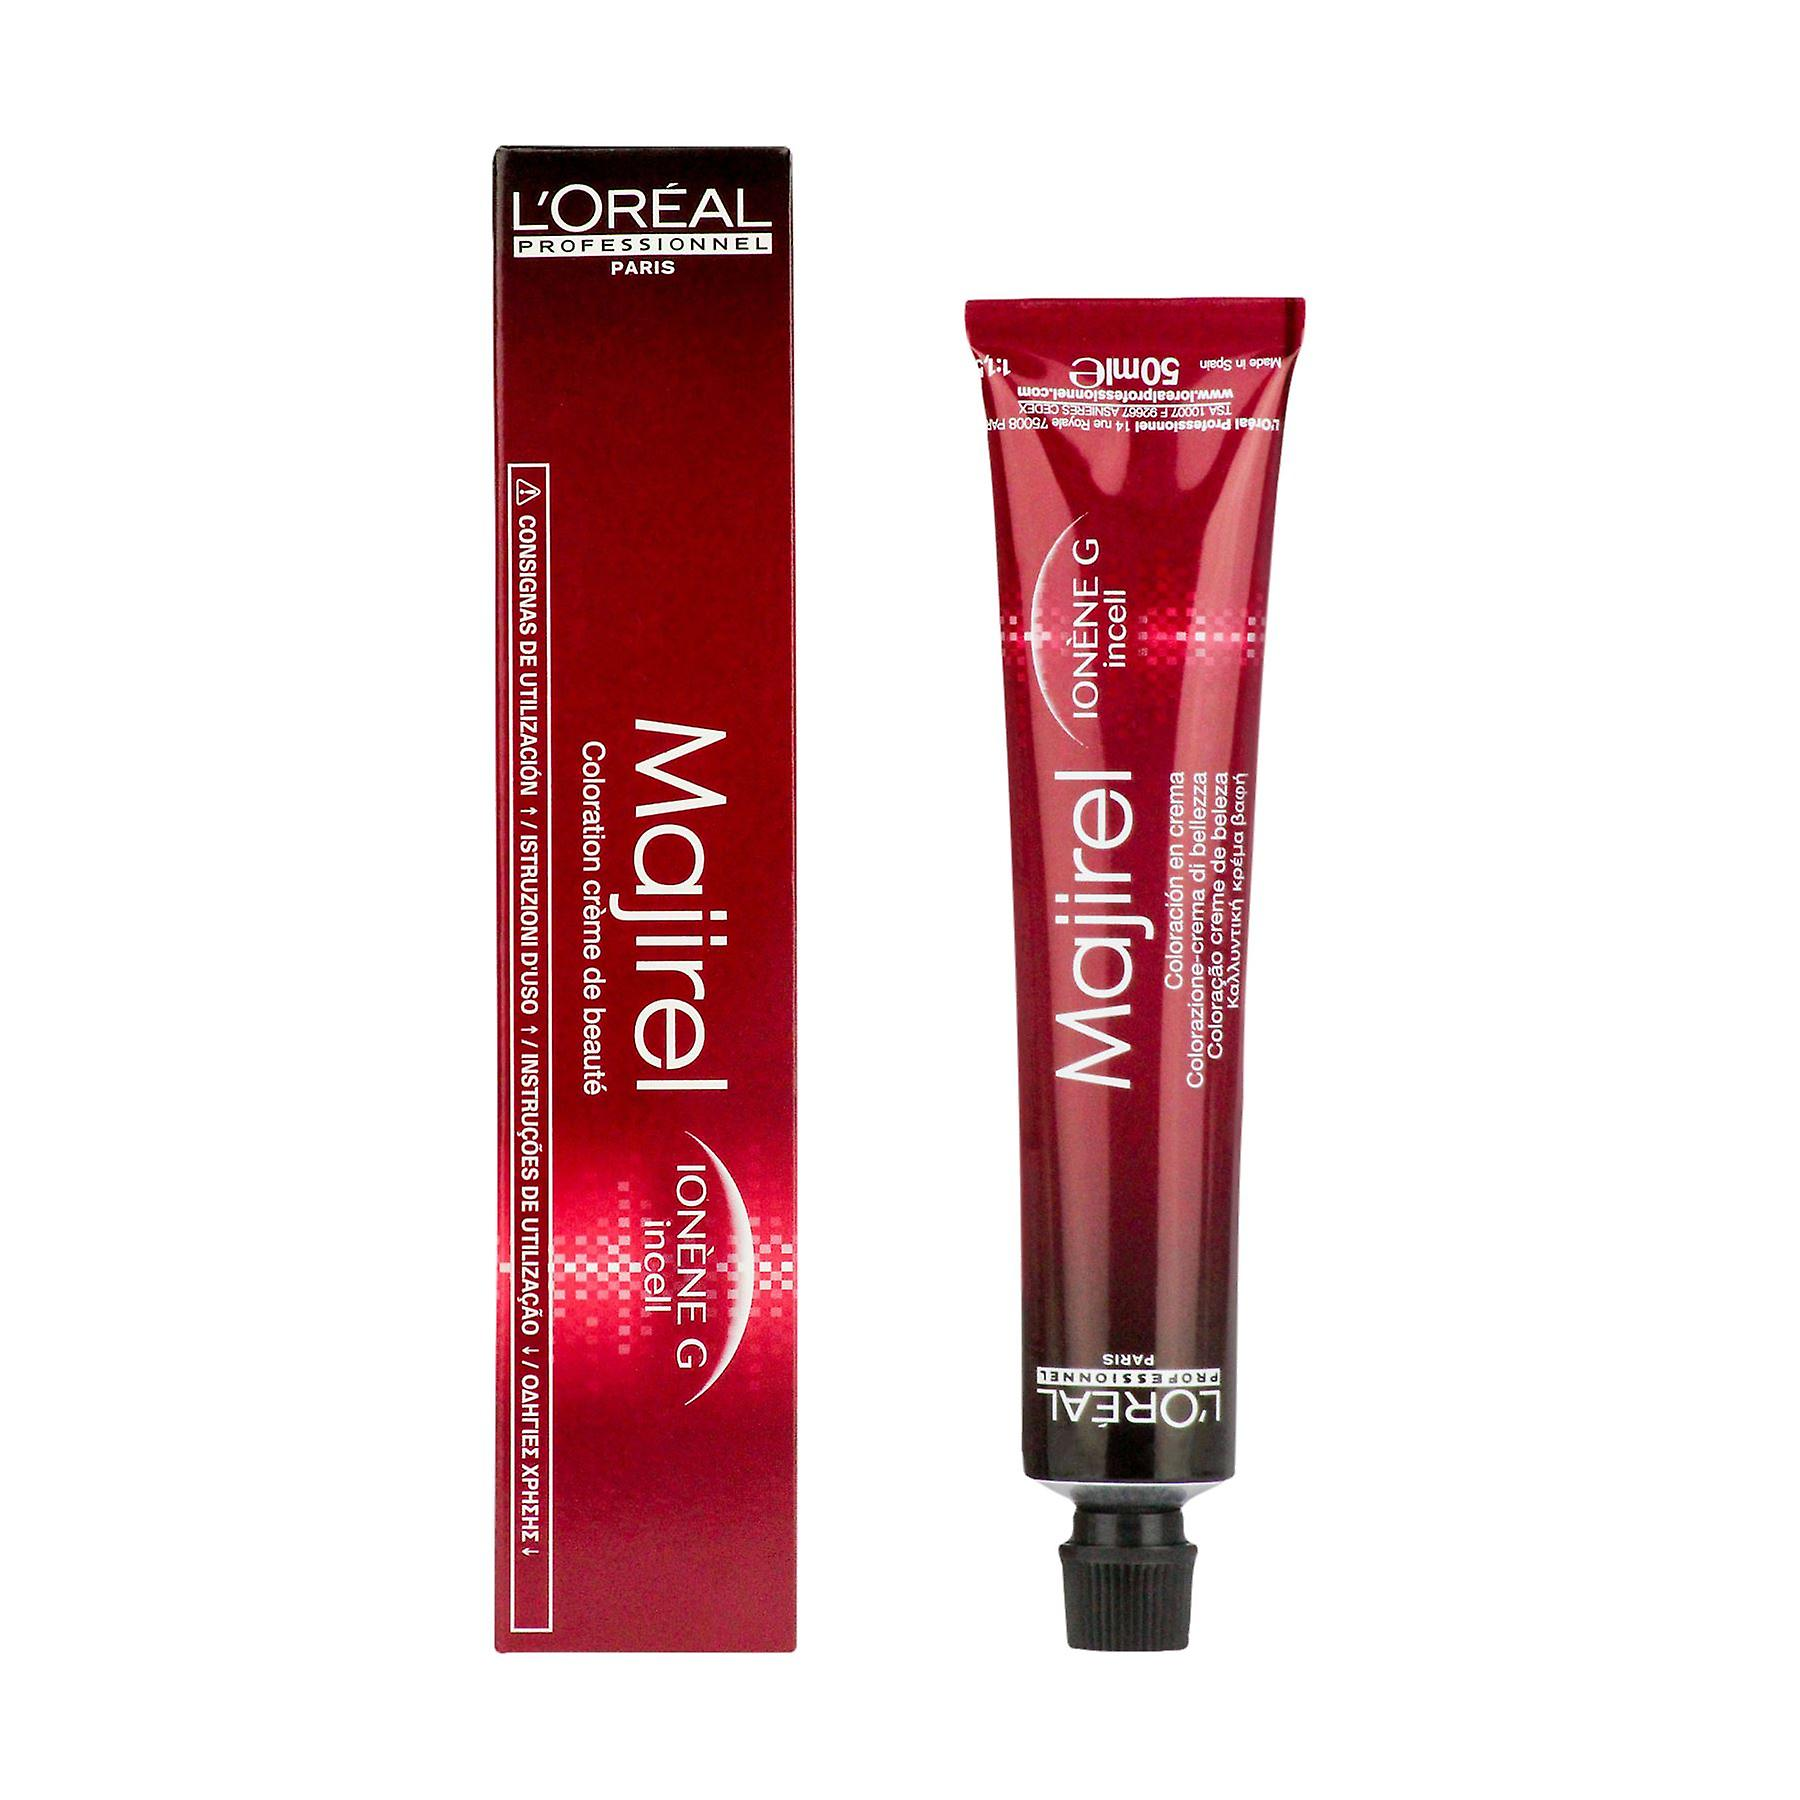 L'Oreal Professionnel Majirel 9, 3 Very Light Golden Blonde 50ml